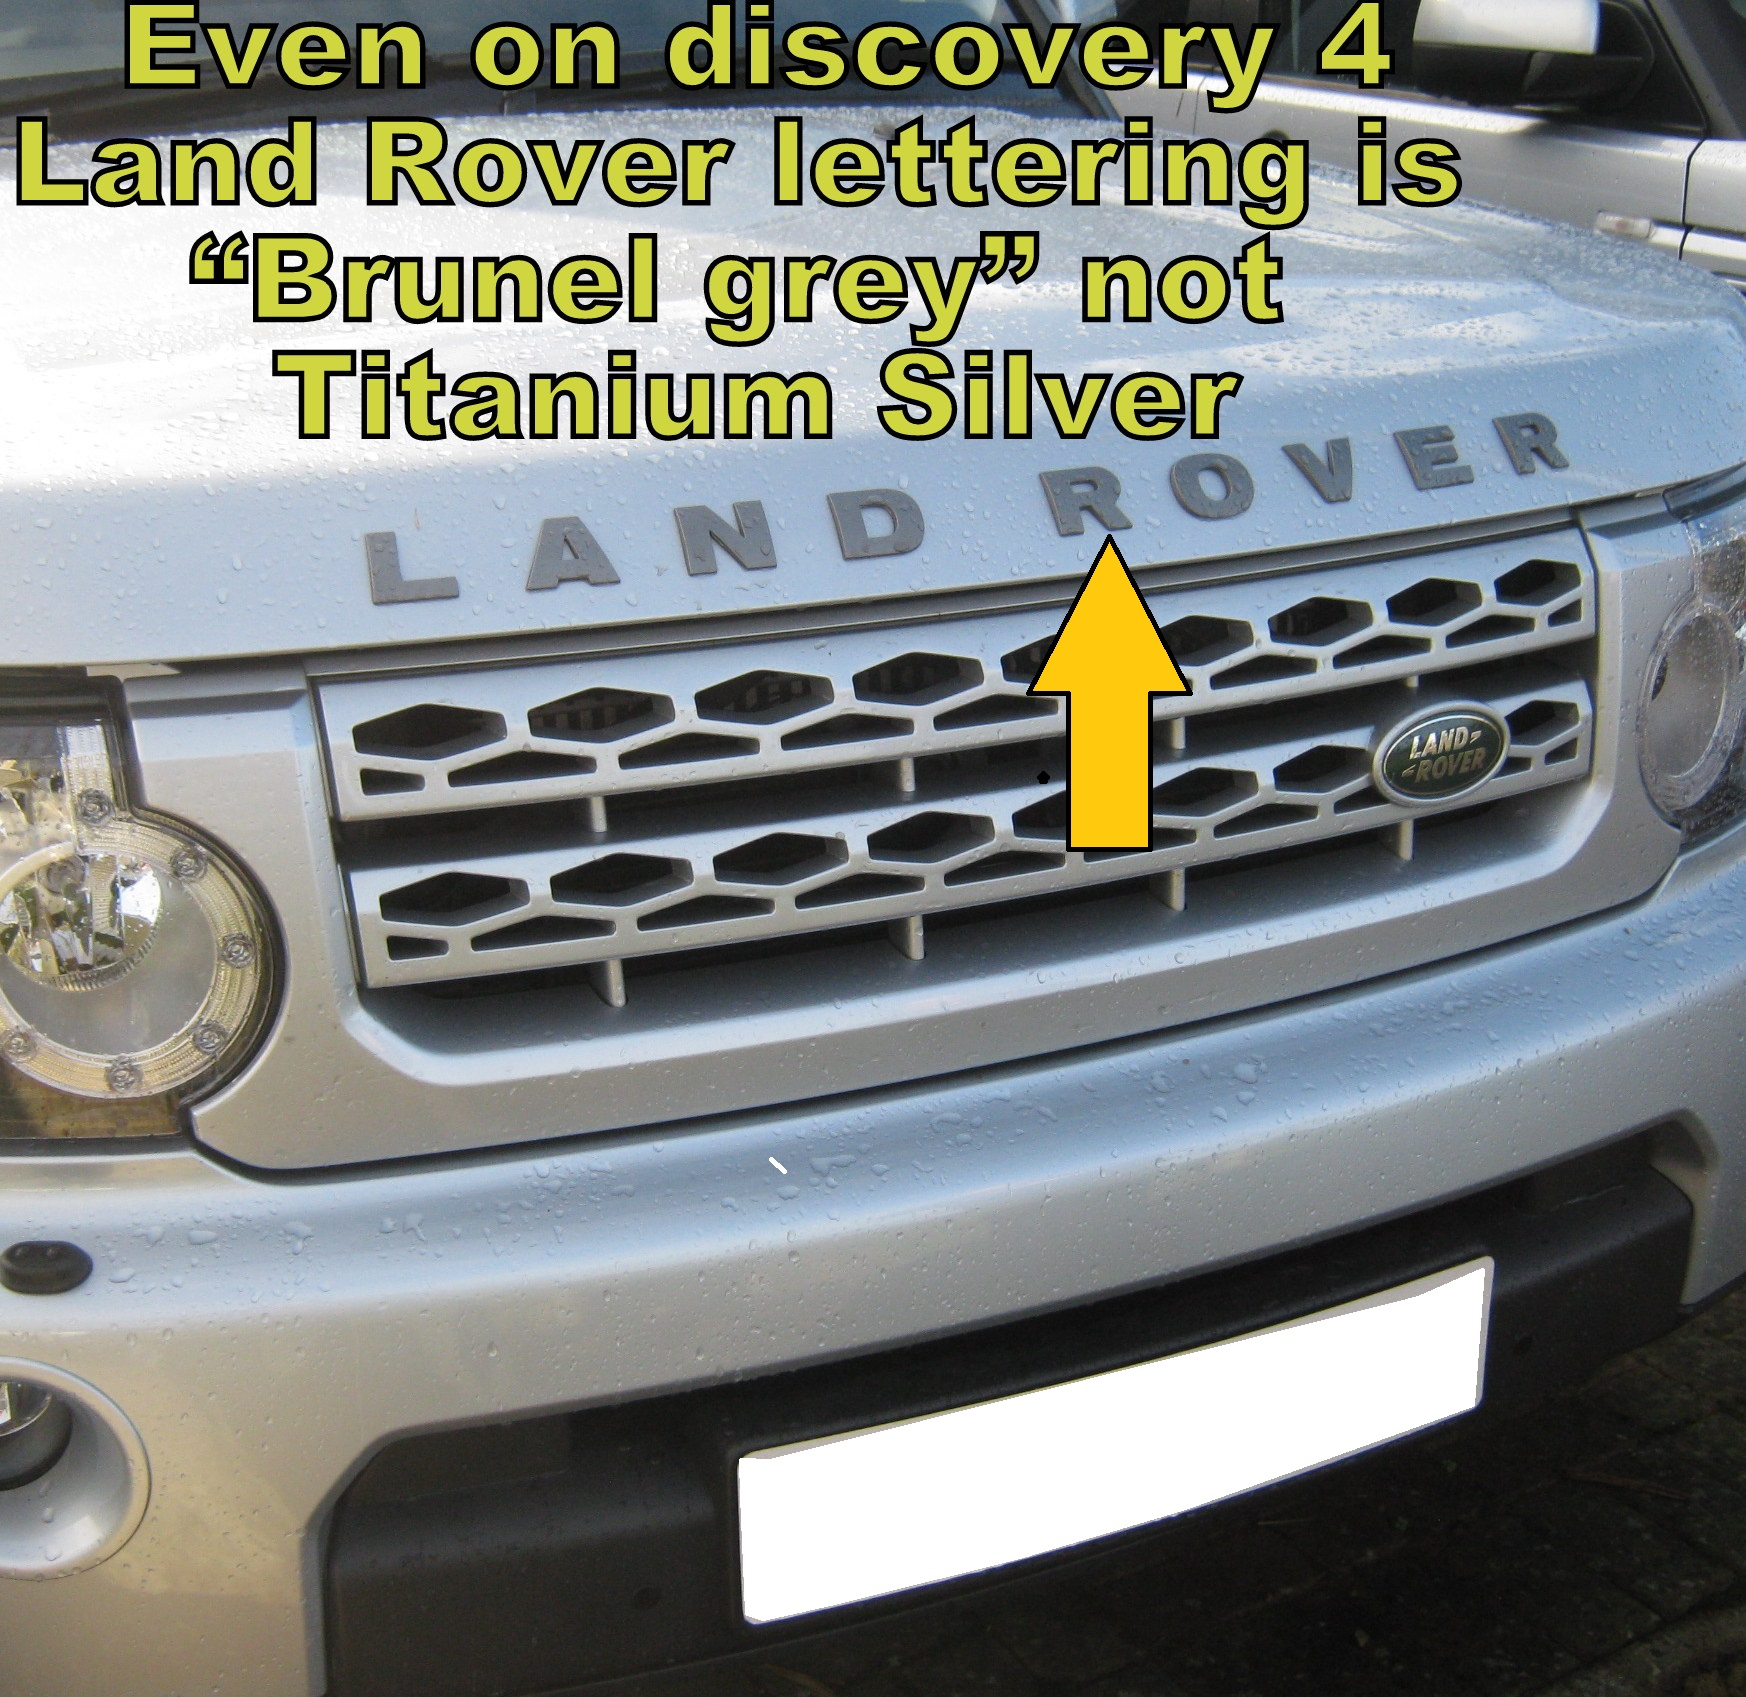 Land Rover Discovery 4 Lr4 2012 3d Model: Titanium Silver Bonnet Lettering LAND ROVER For Discovery